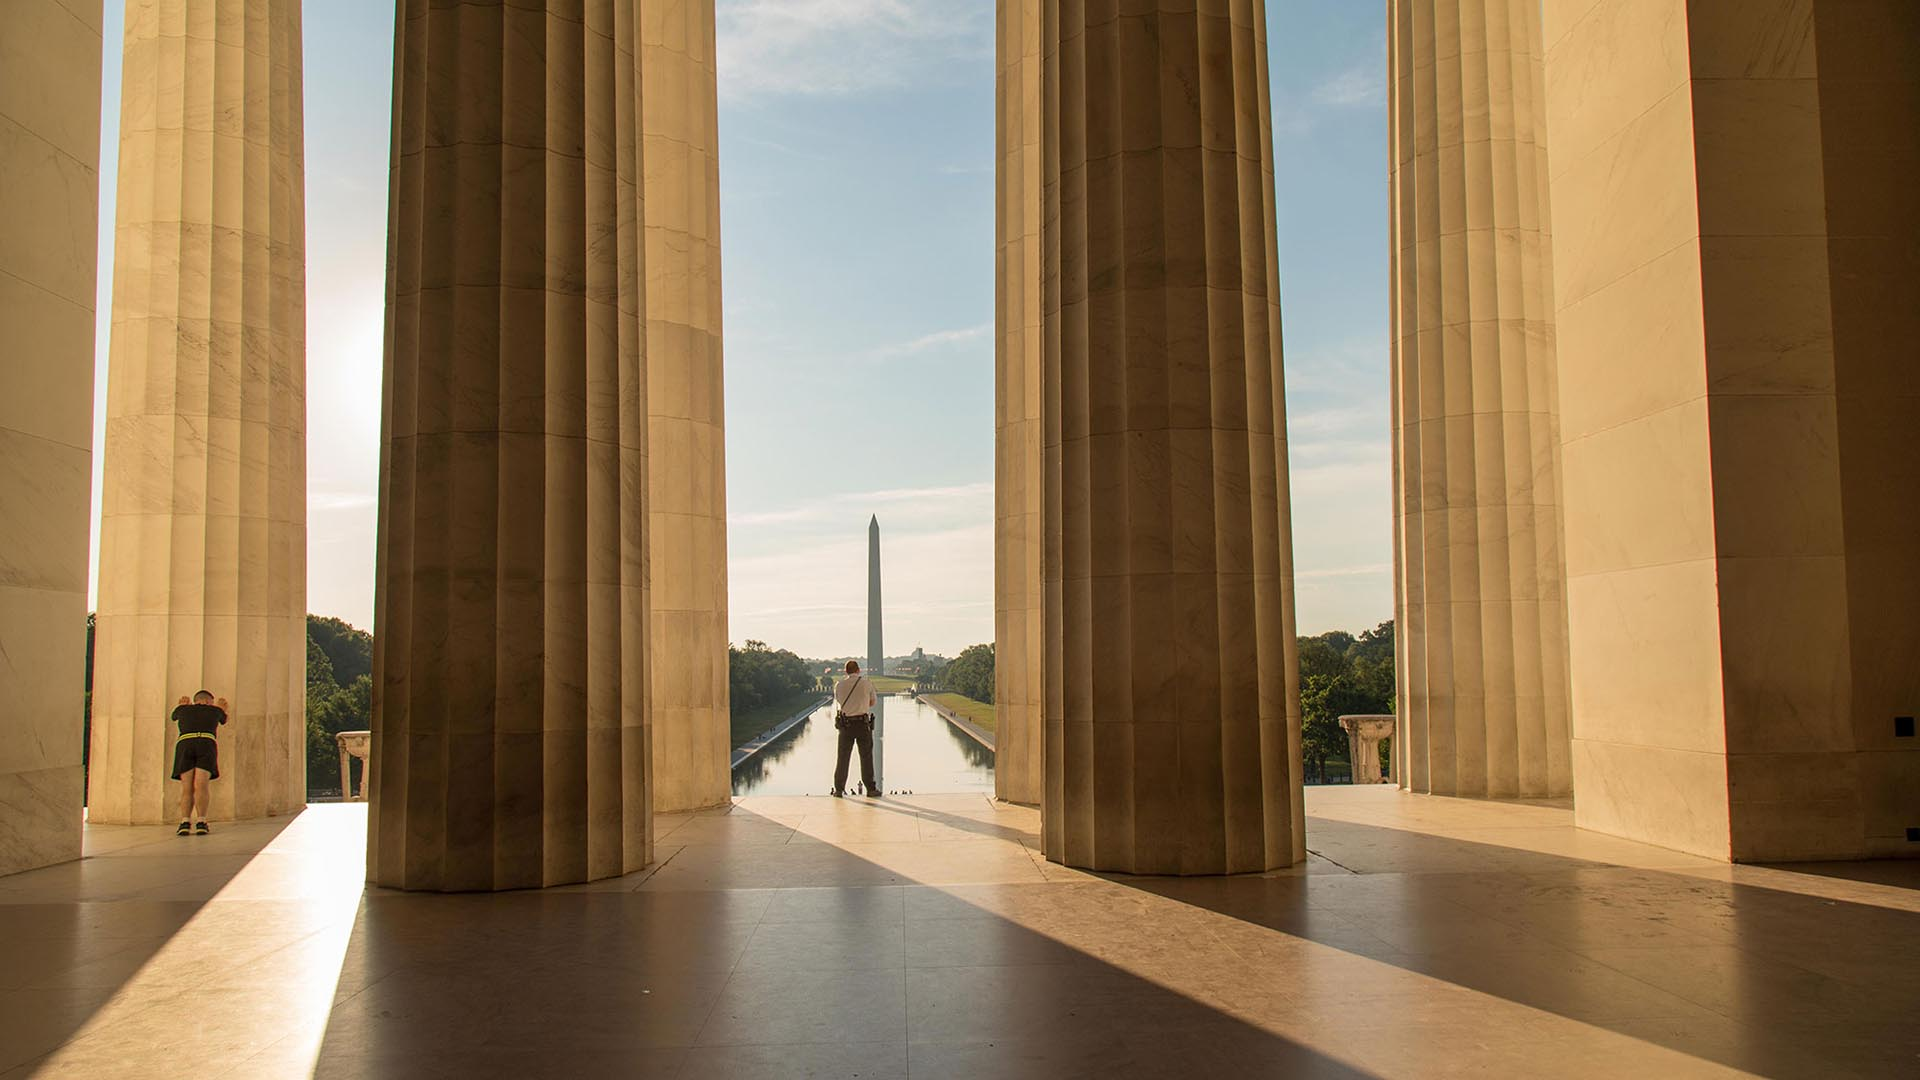 10 MONUMENTS THAT CHANGED AMERICA